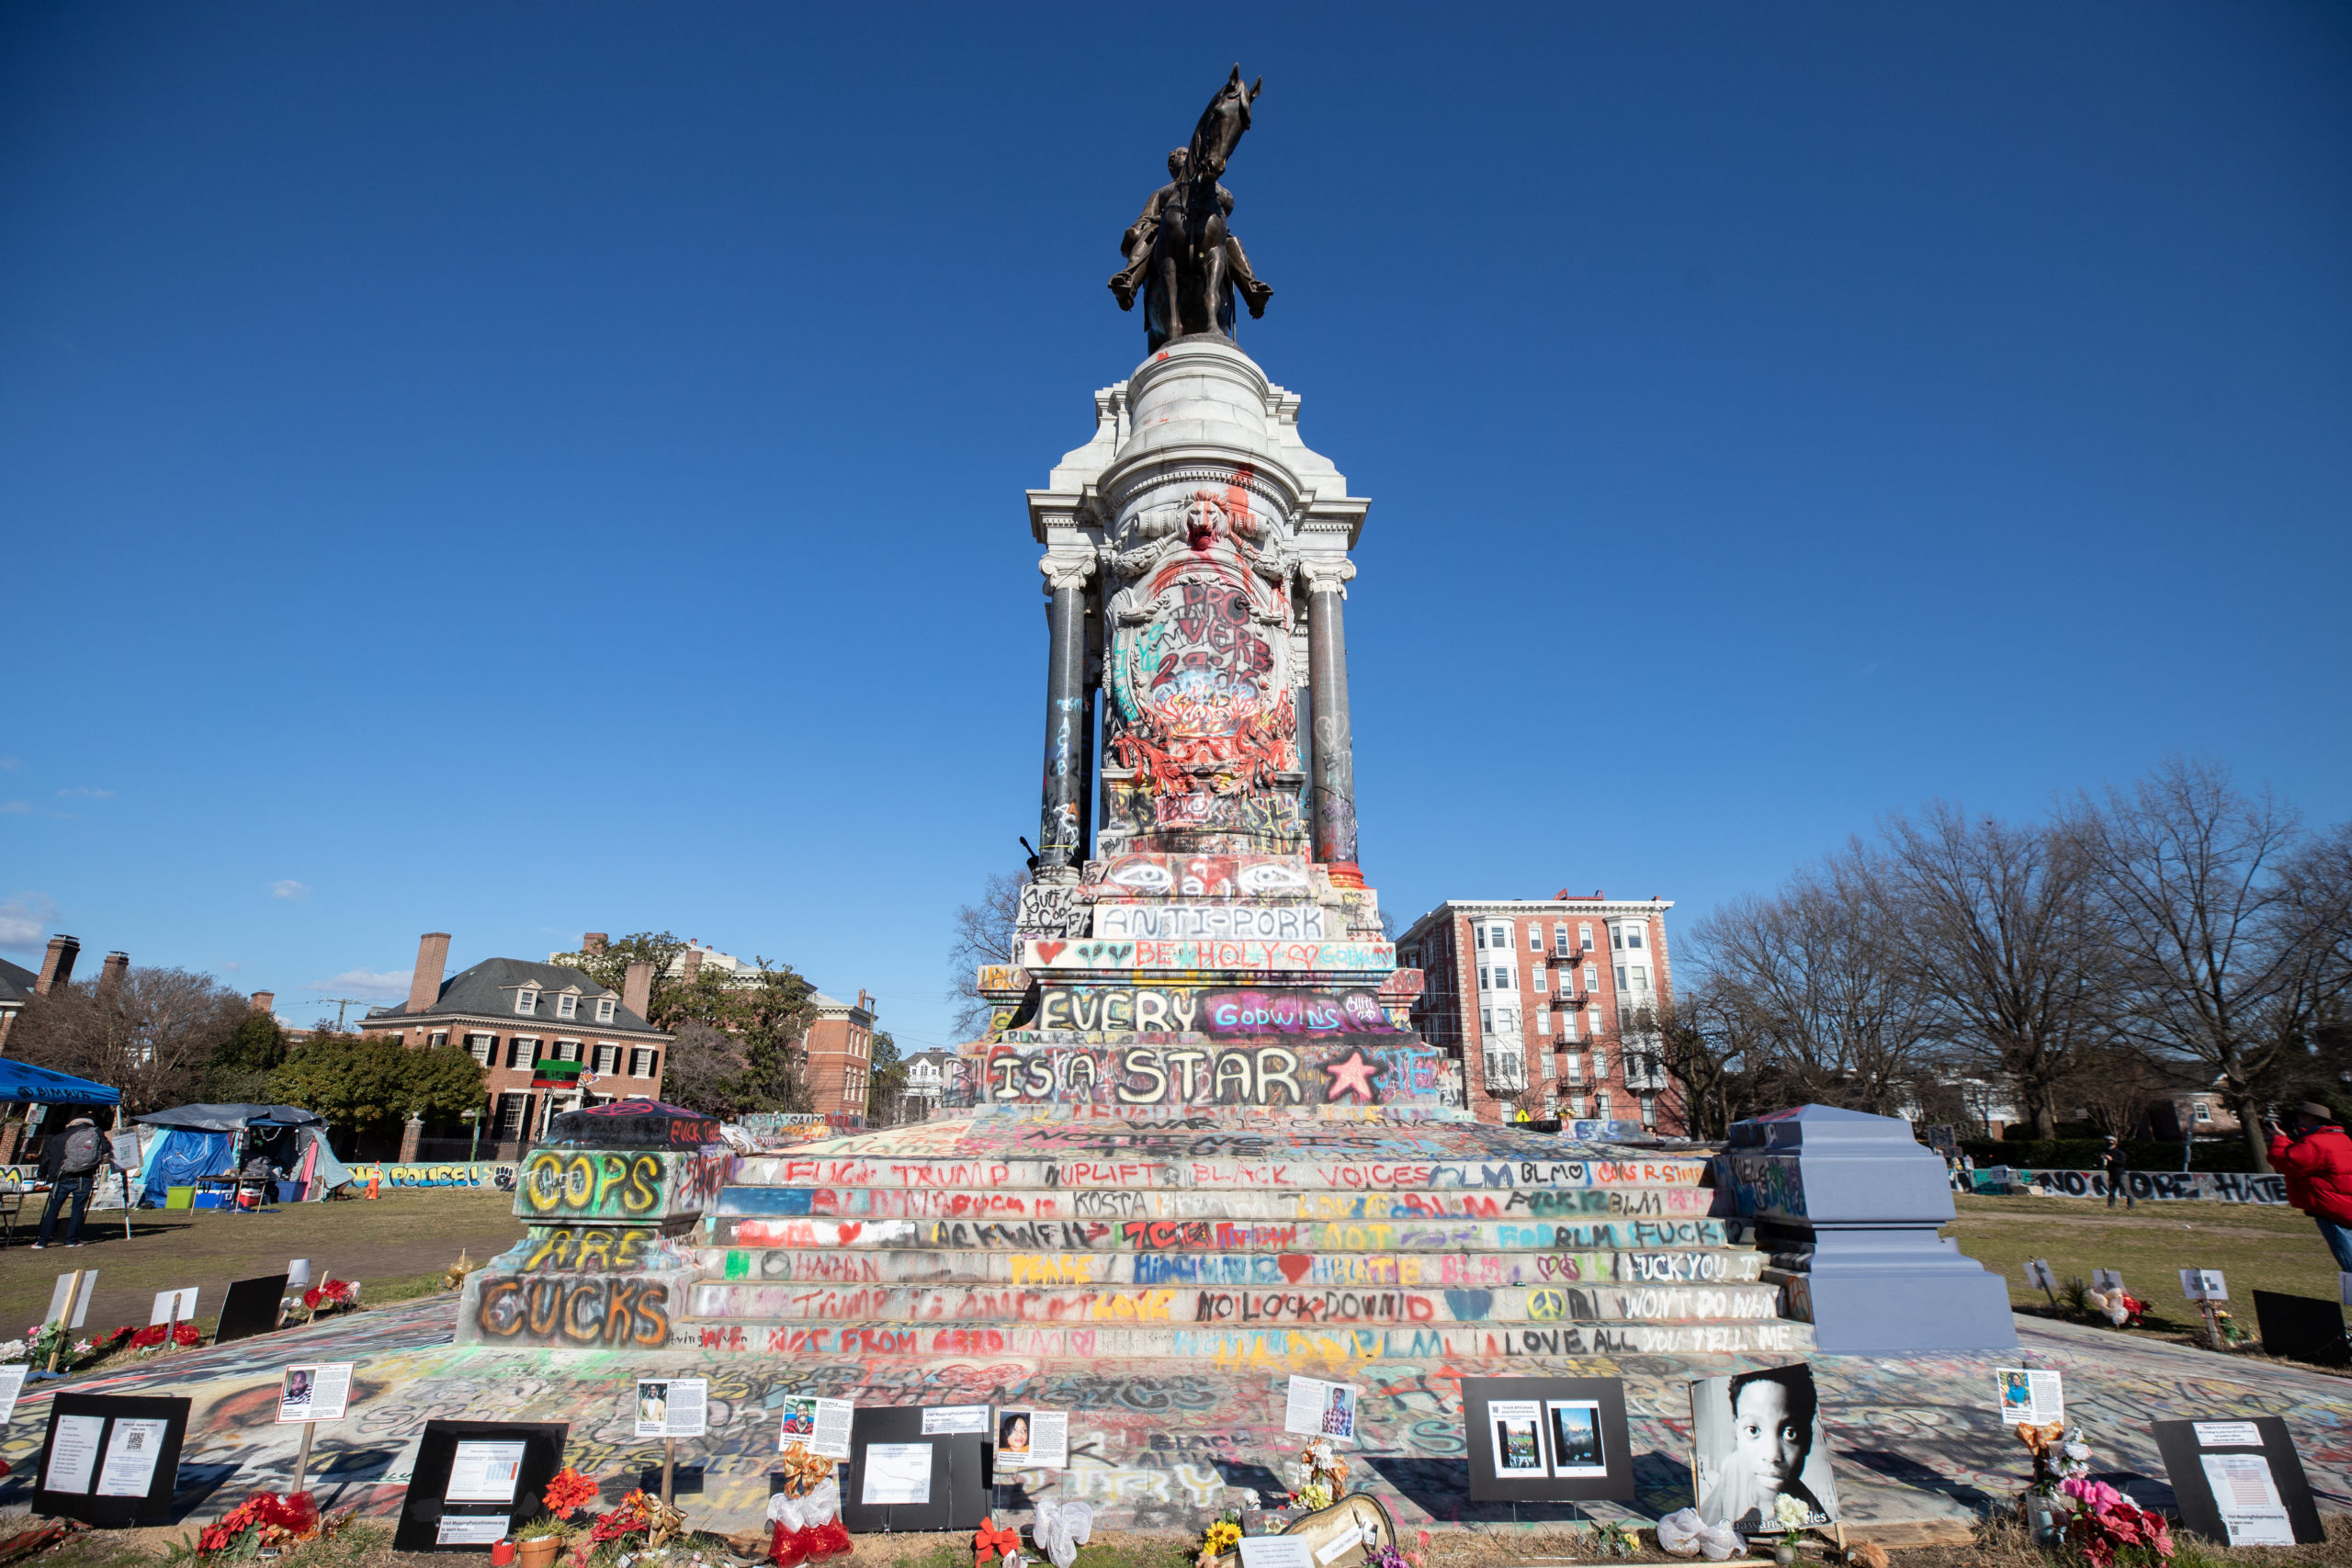 The Robert E. Lee statue in Richmond, Virginia, has been transformed into a piece of what community members call protest art where people gather to participate in mutual aid, play sports and garden, Jan. 17, 2021. (Kaylee Greenlee - Daily Caller News Foundation.)